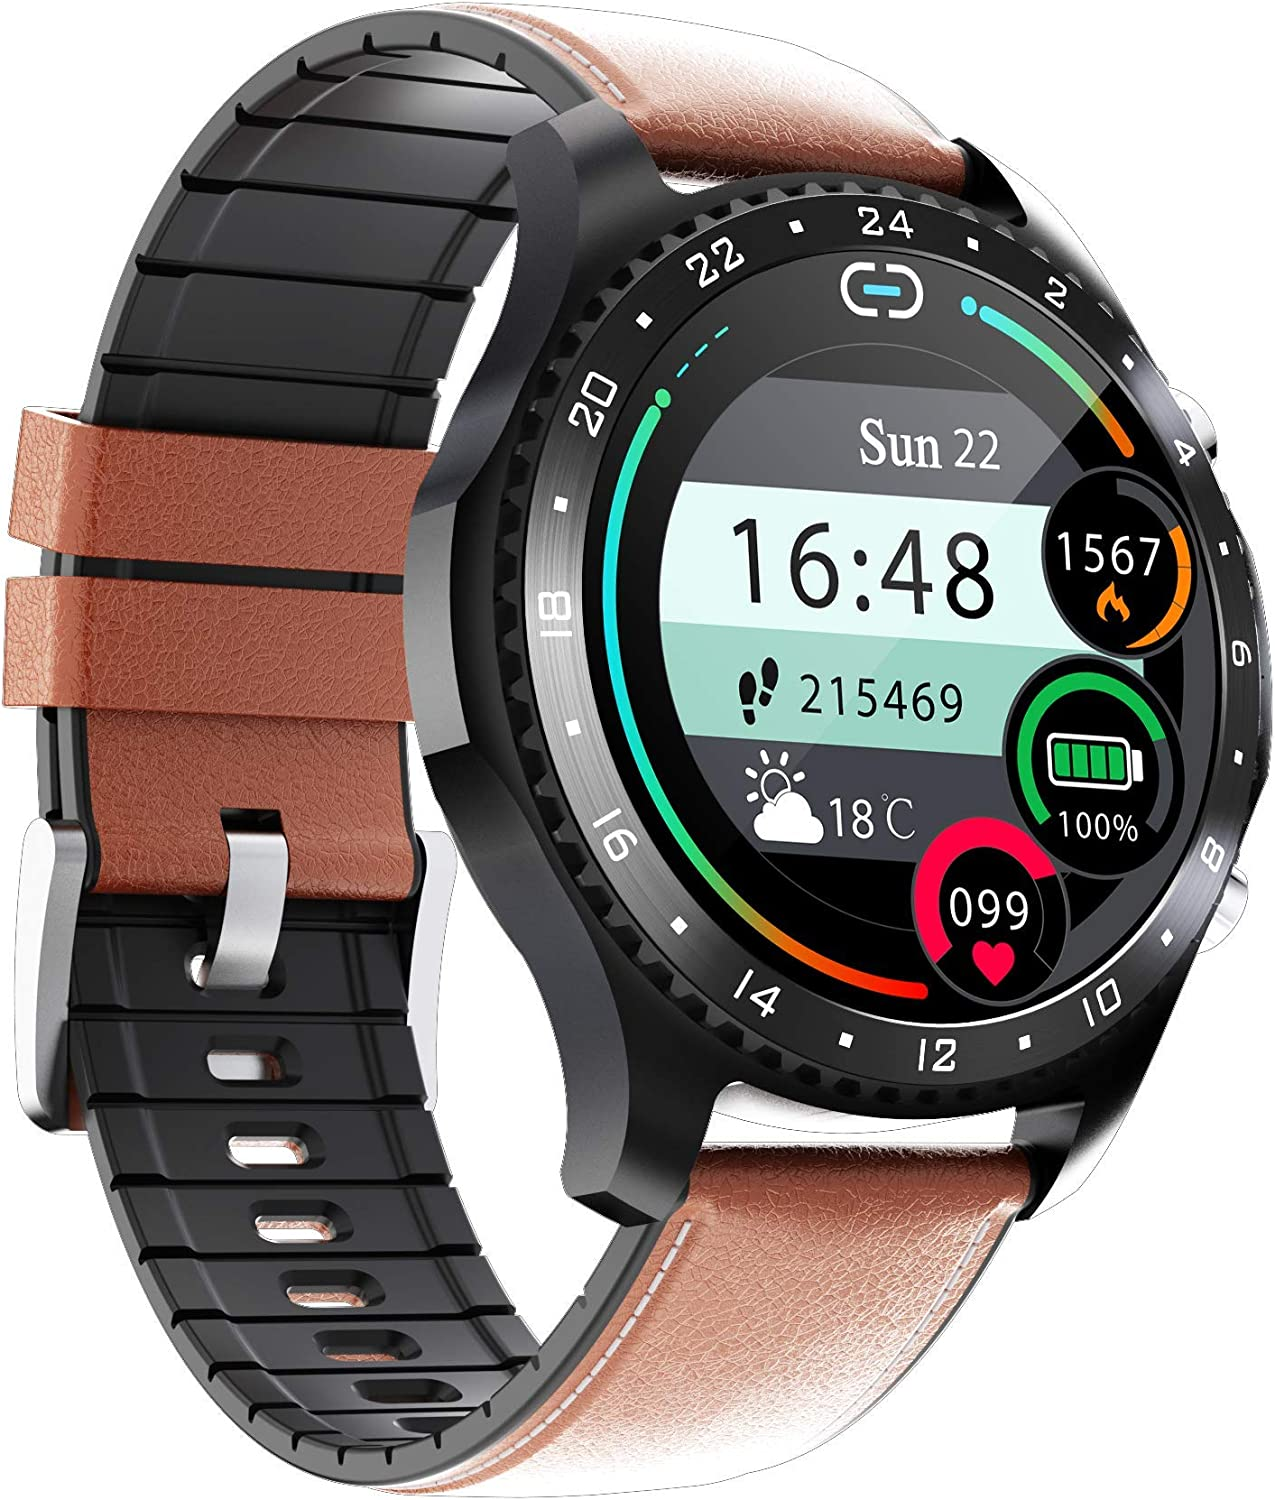 SPOREX Series 2021 Bluetooth Music Smart Watch for Android Phones & iPhone with Music Control; Fitness Tracker; Blood Pressure & Heart Rate Monitor; Oxygen Meter; Sport Rugged Touchscreen Smartwatch